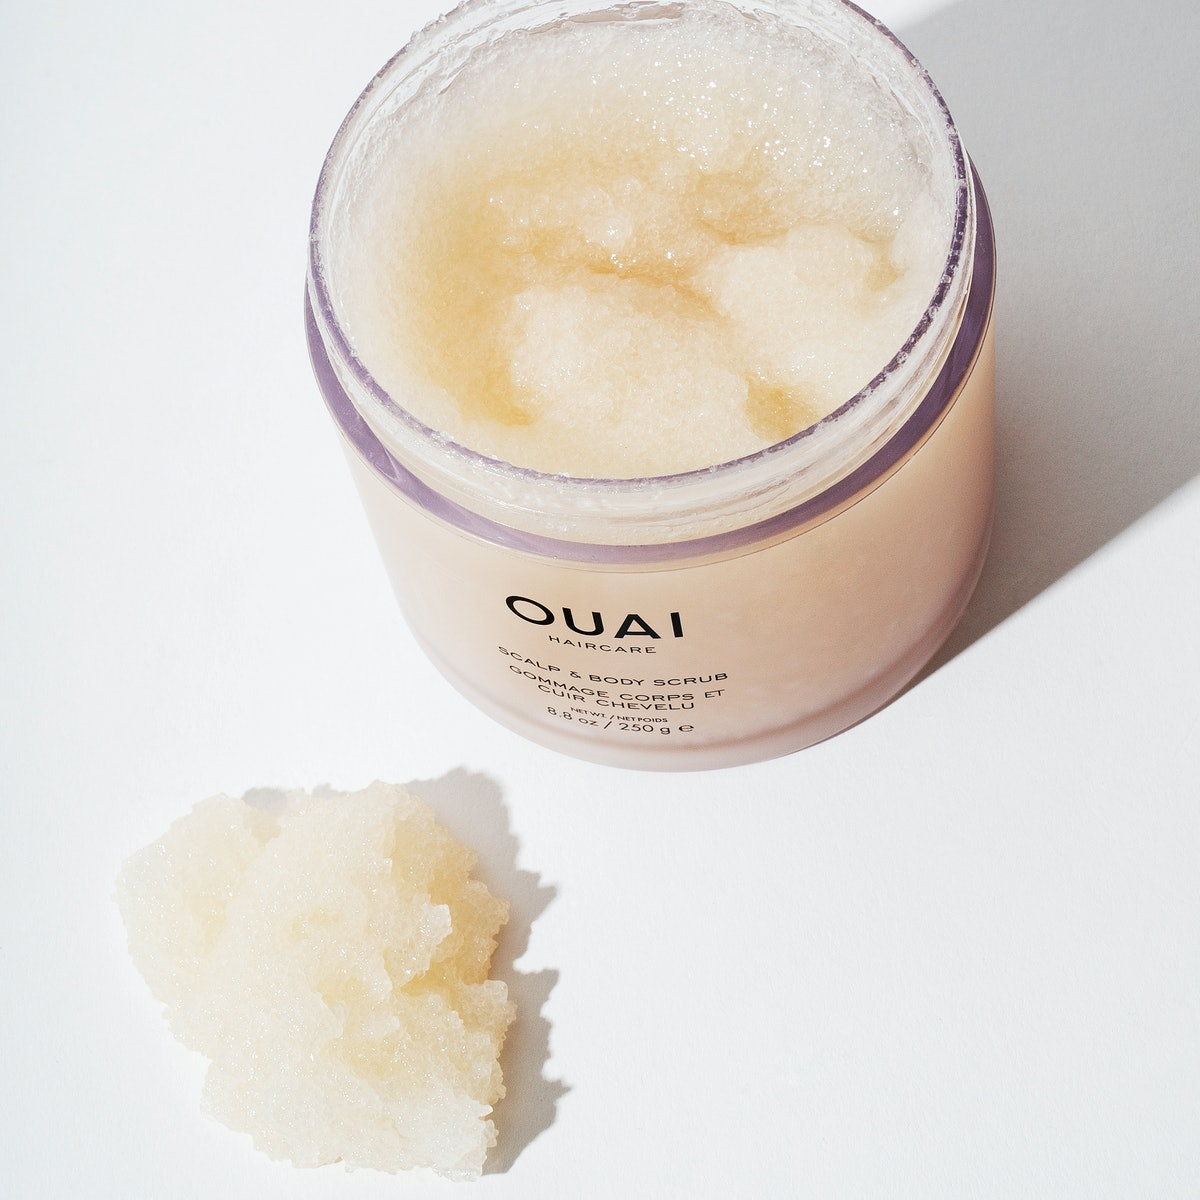 12 Exfoliating Scalp Scrubs That Help With Dandruff & Buildup